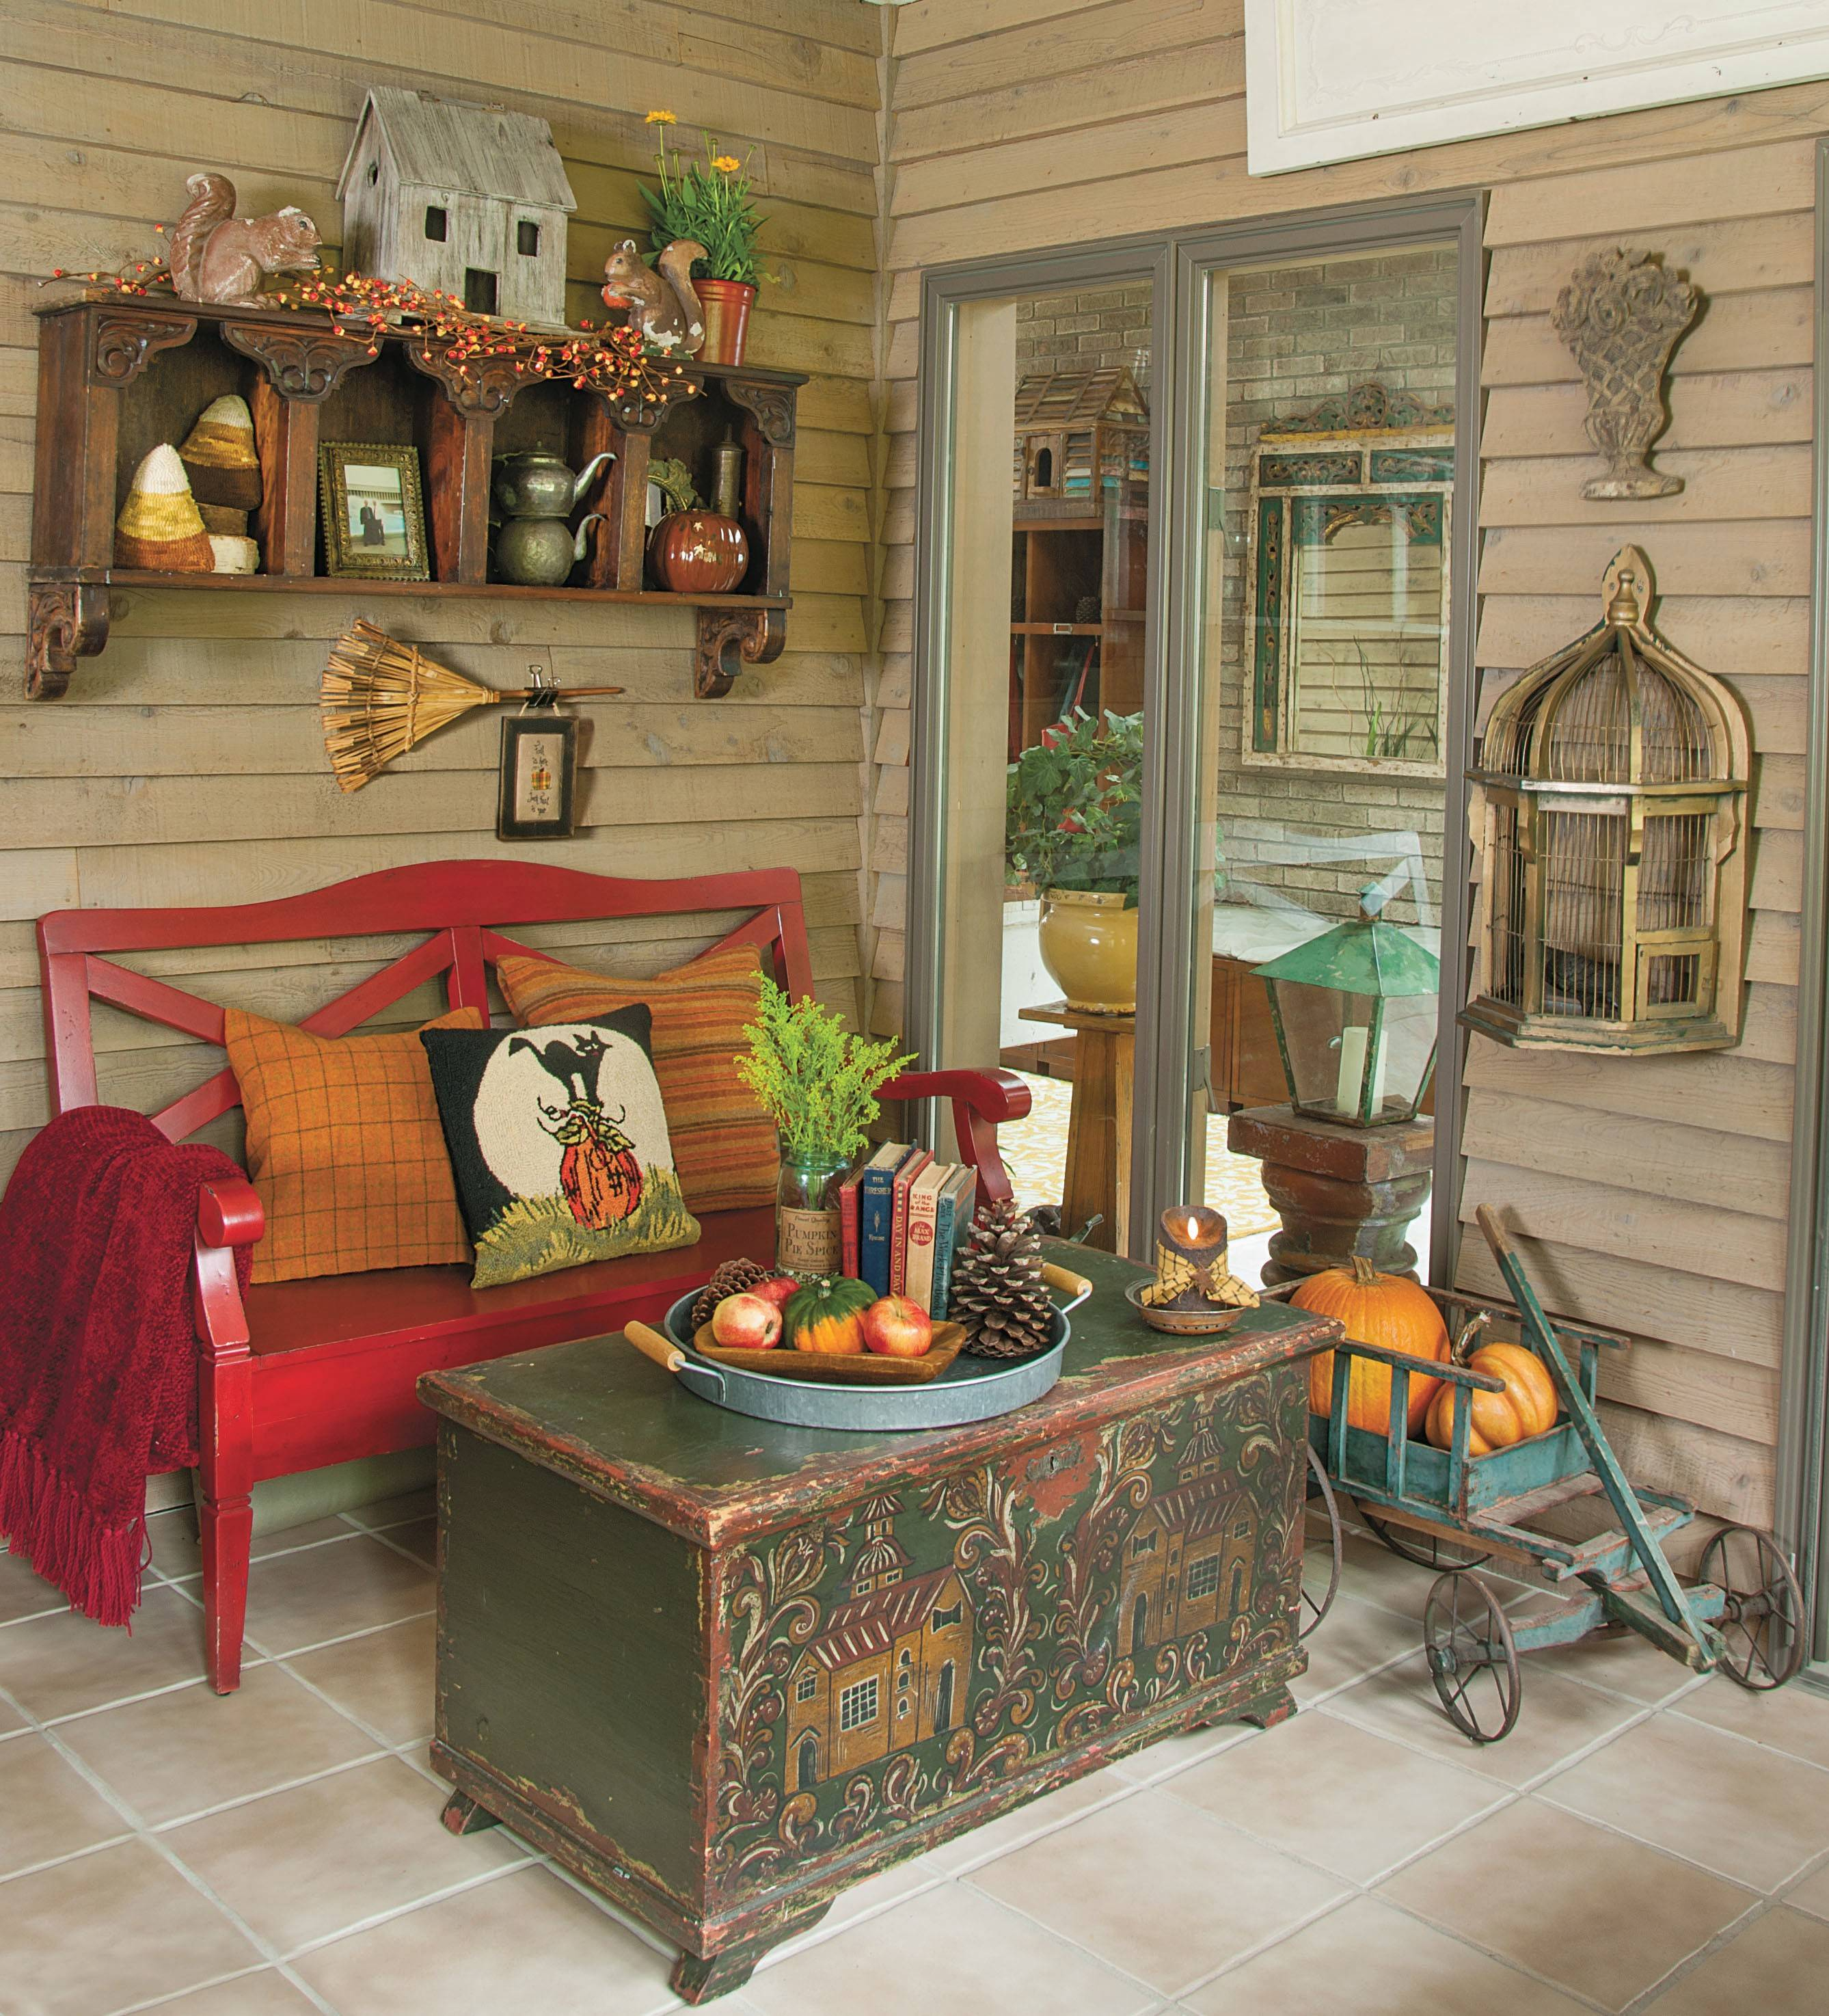 36 Stylish Primitive Home Decorating Ideas: How To Create A Cohesive Fall Style In A Three-season Sunroom